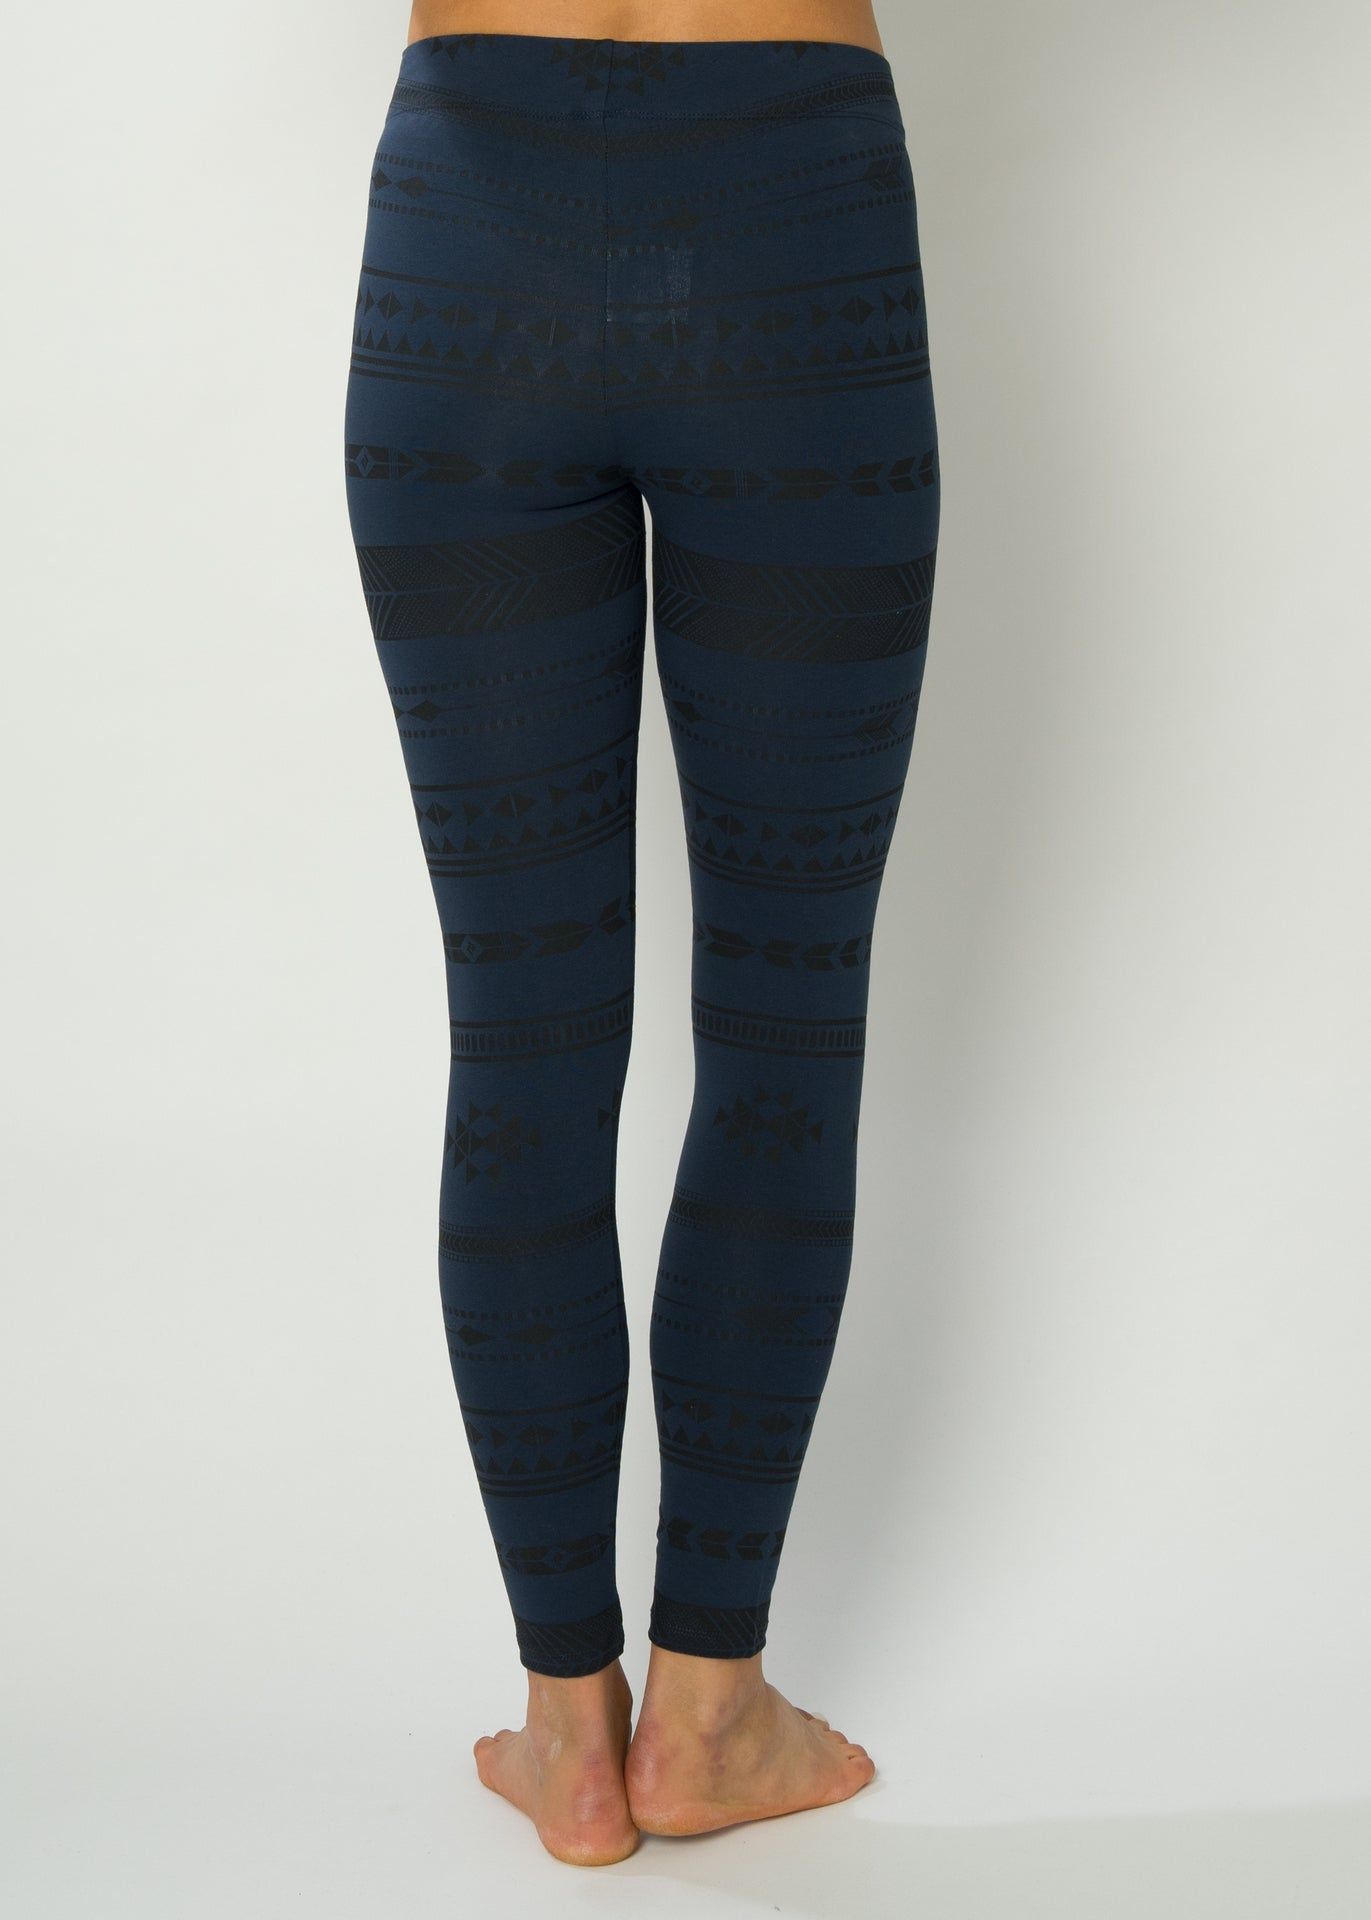 Leggings MOKIG Navy